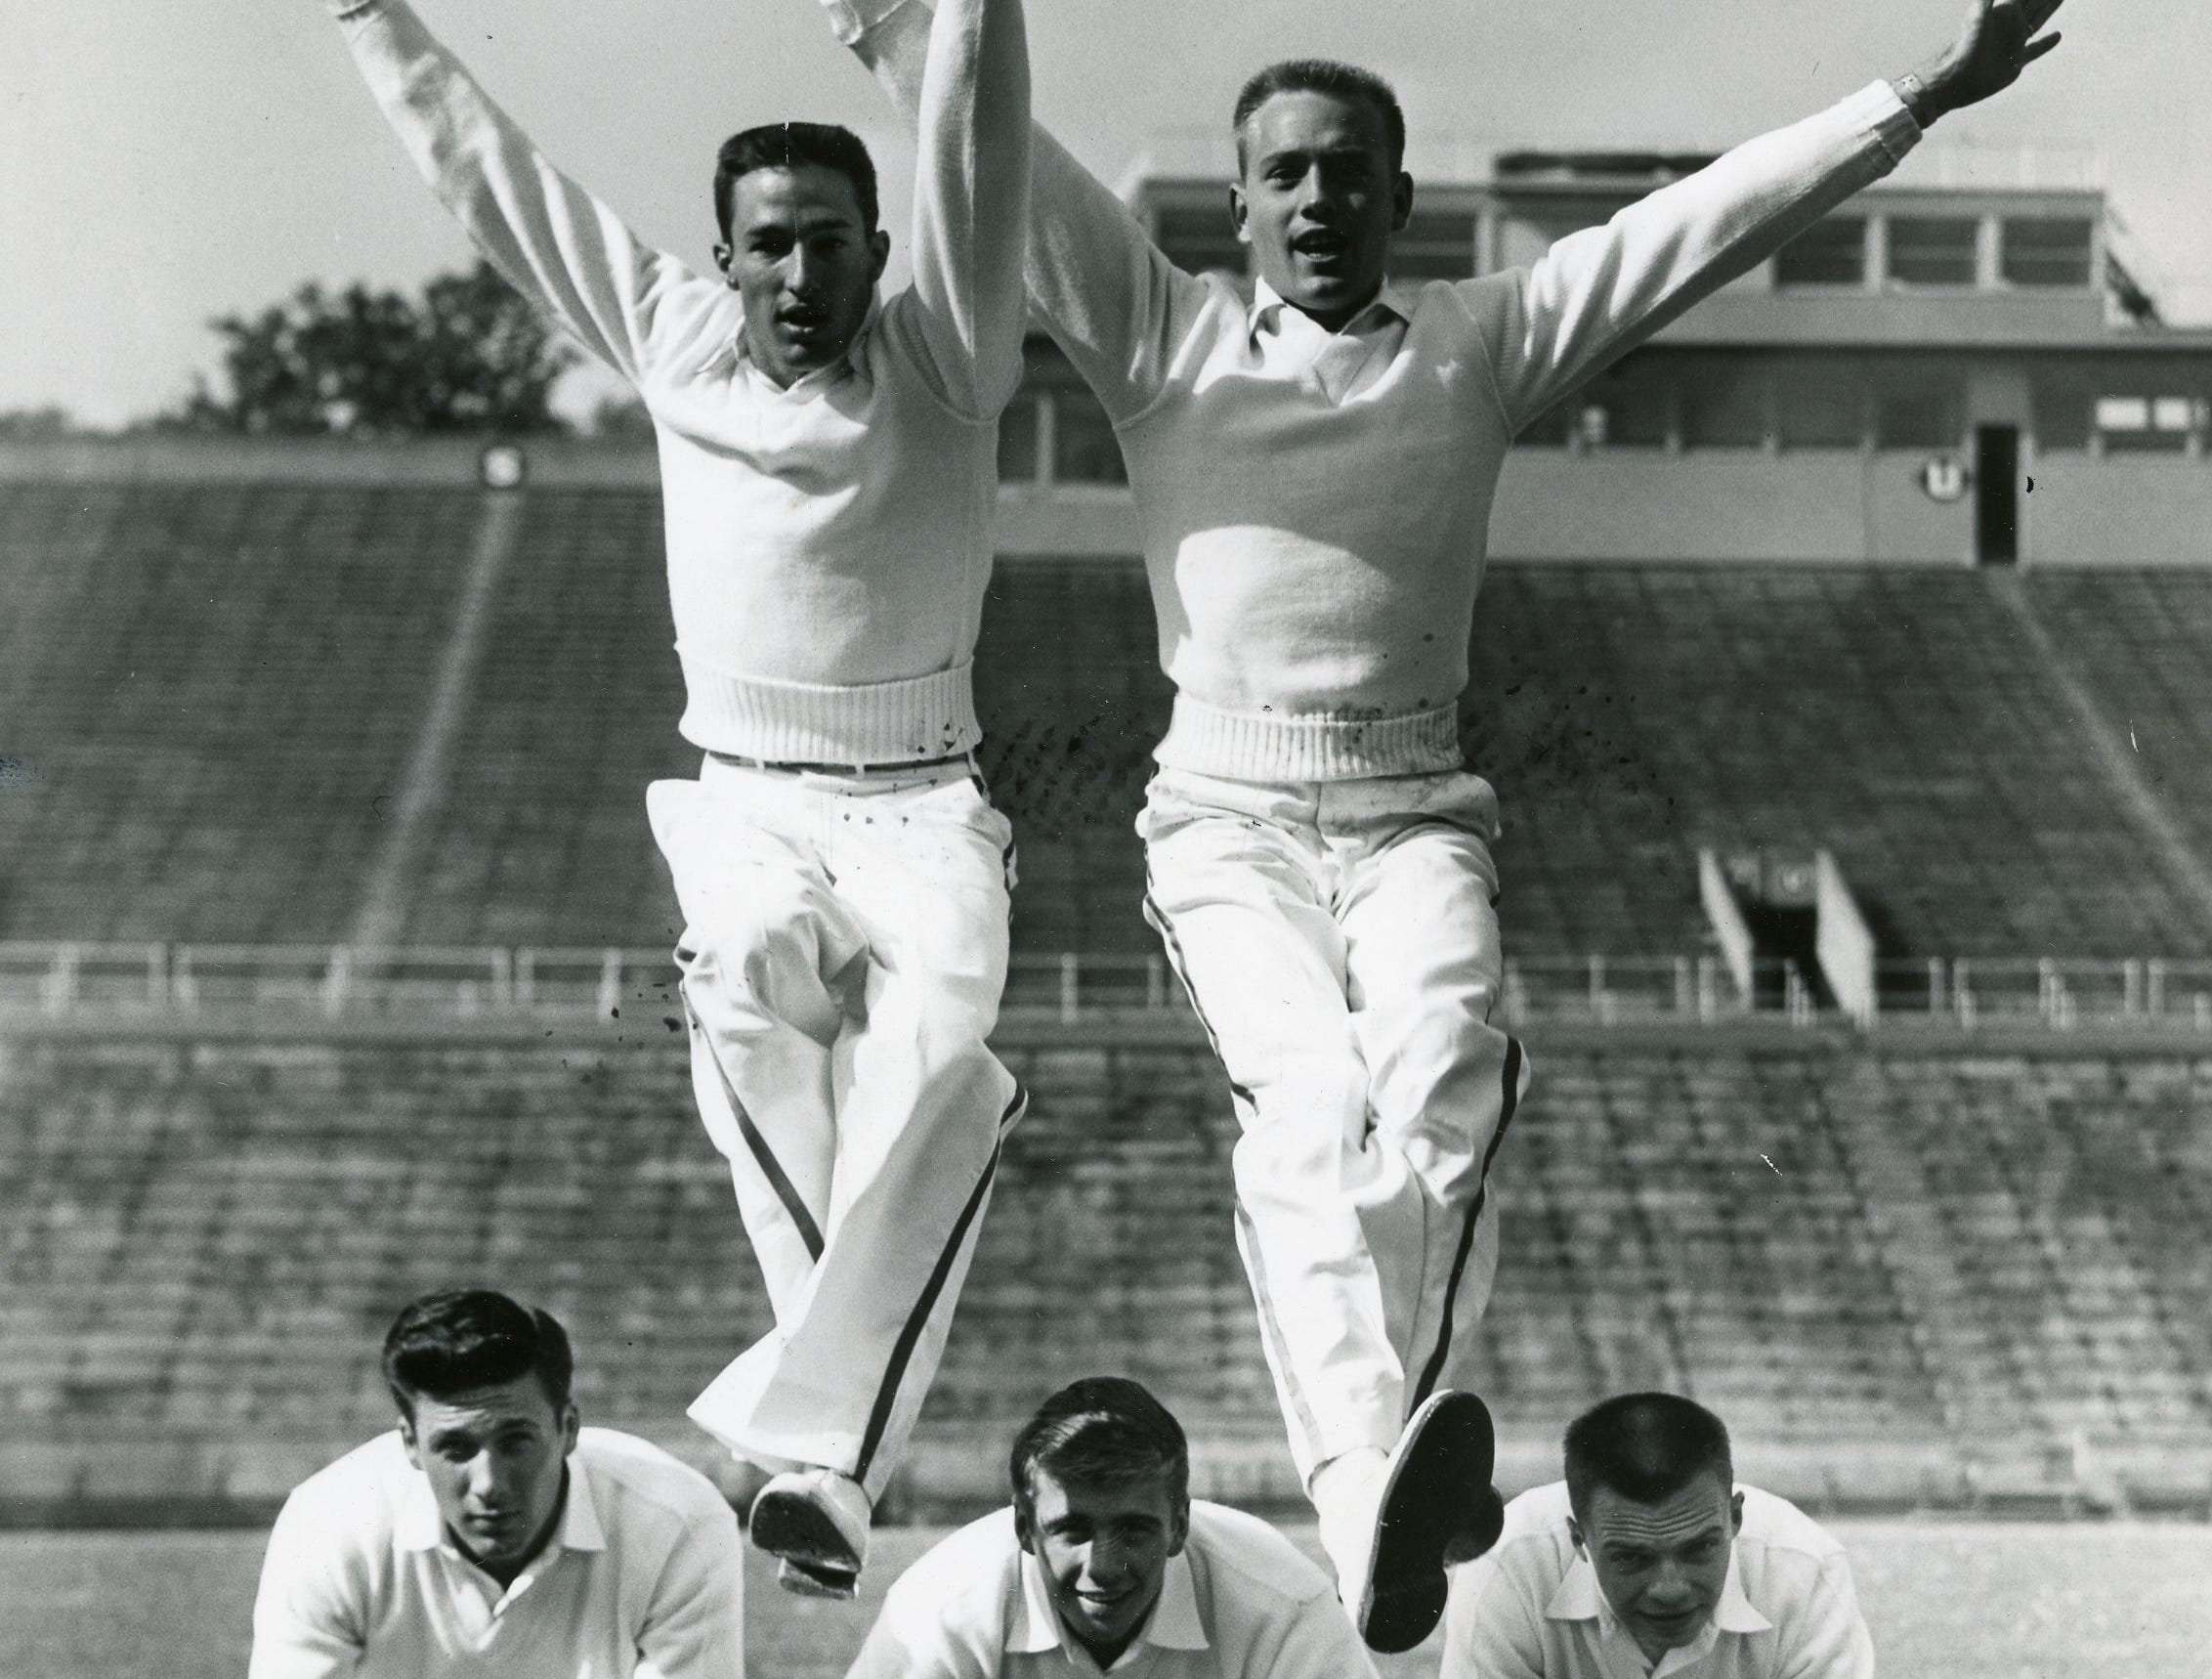 UT cheerleaders perform a stunt for the photographer in this September, 1955 photo. Pictured are (front) Dave Dean, Bill Weller, Gene Fox; (back) Jerry Adams and Bill Sears.